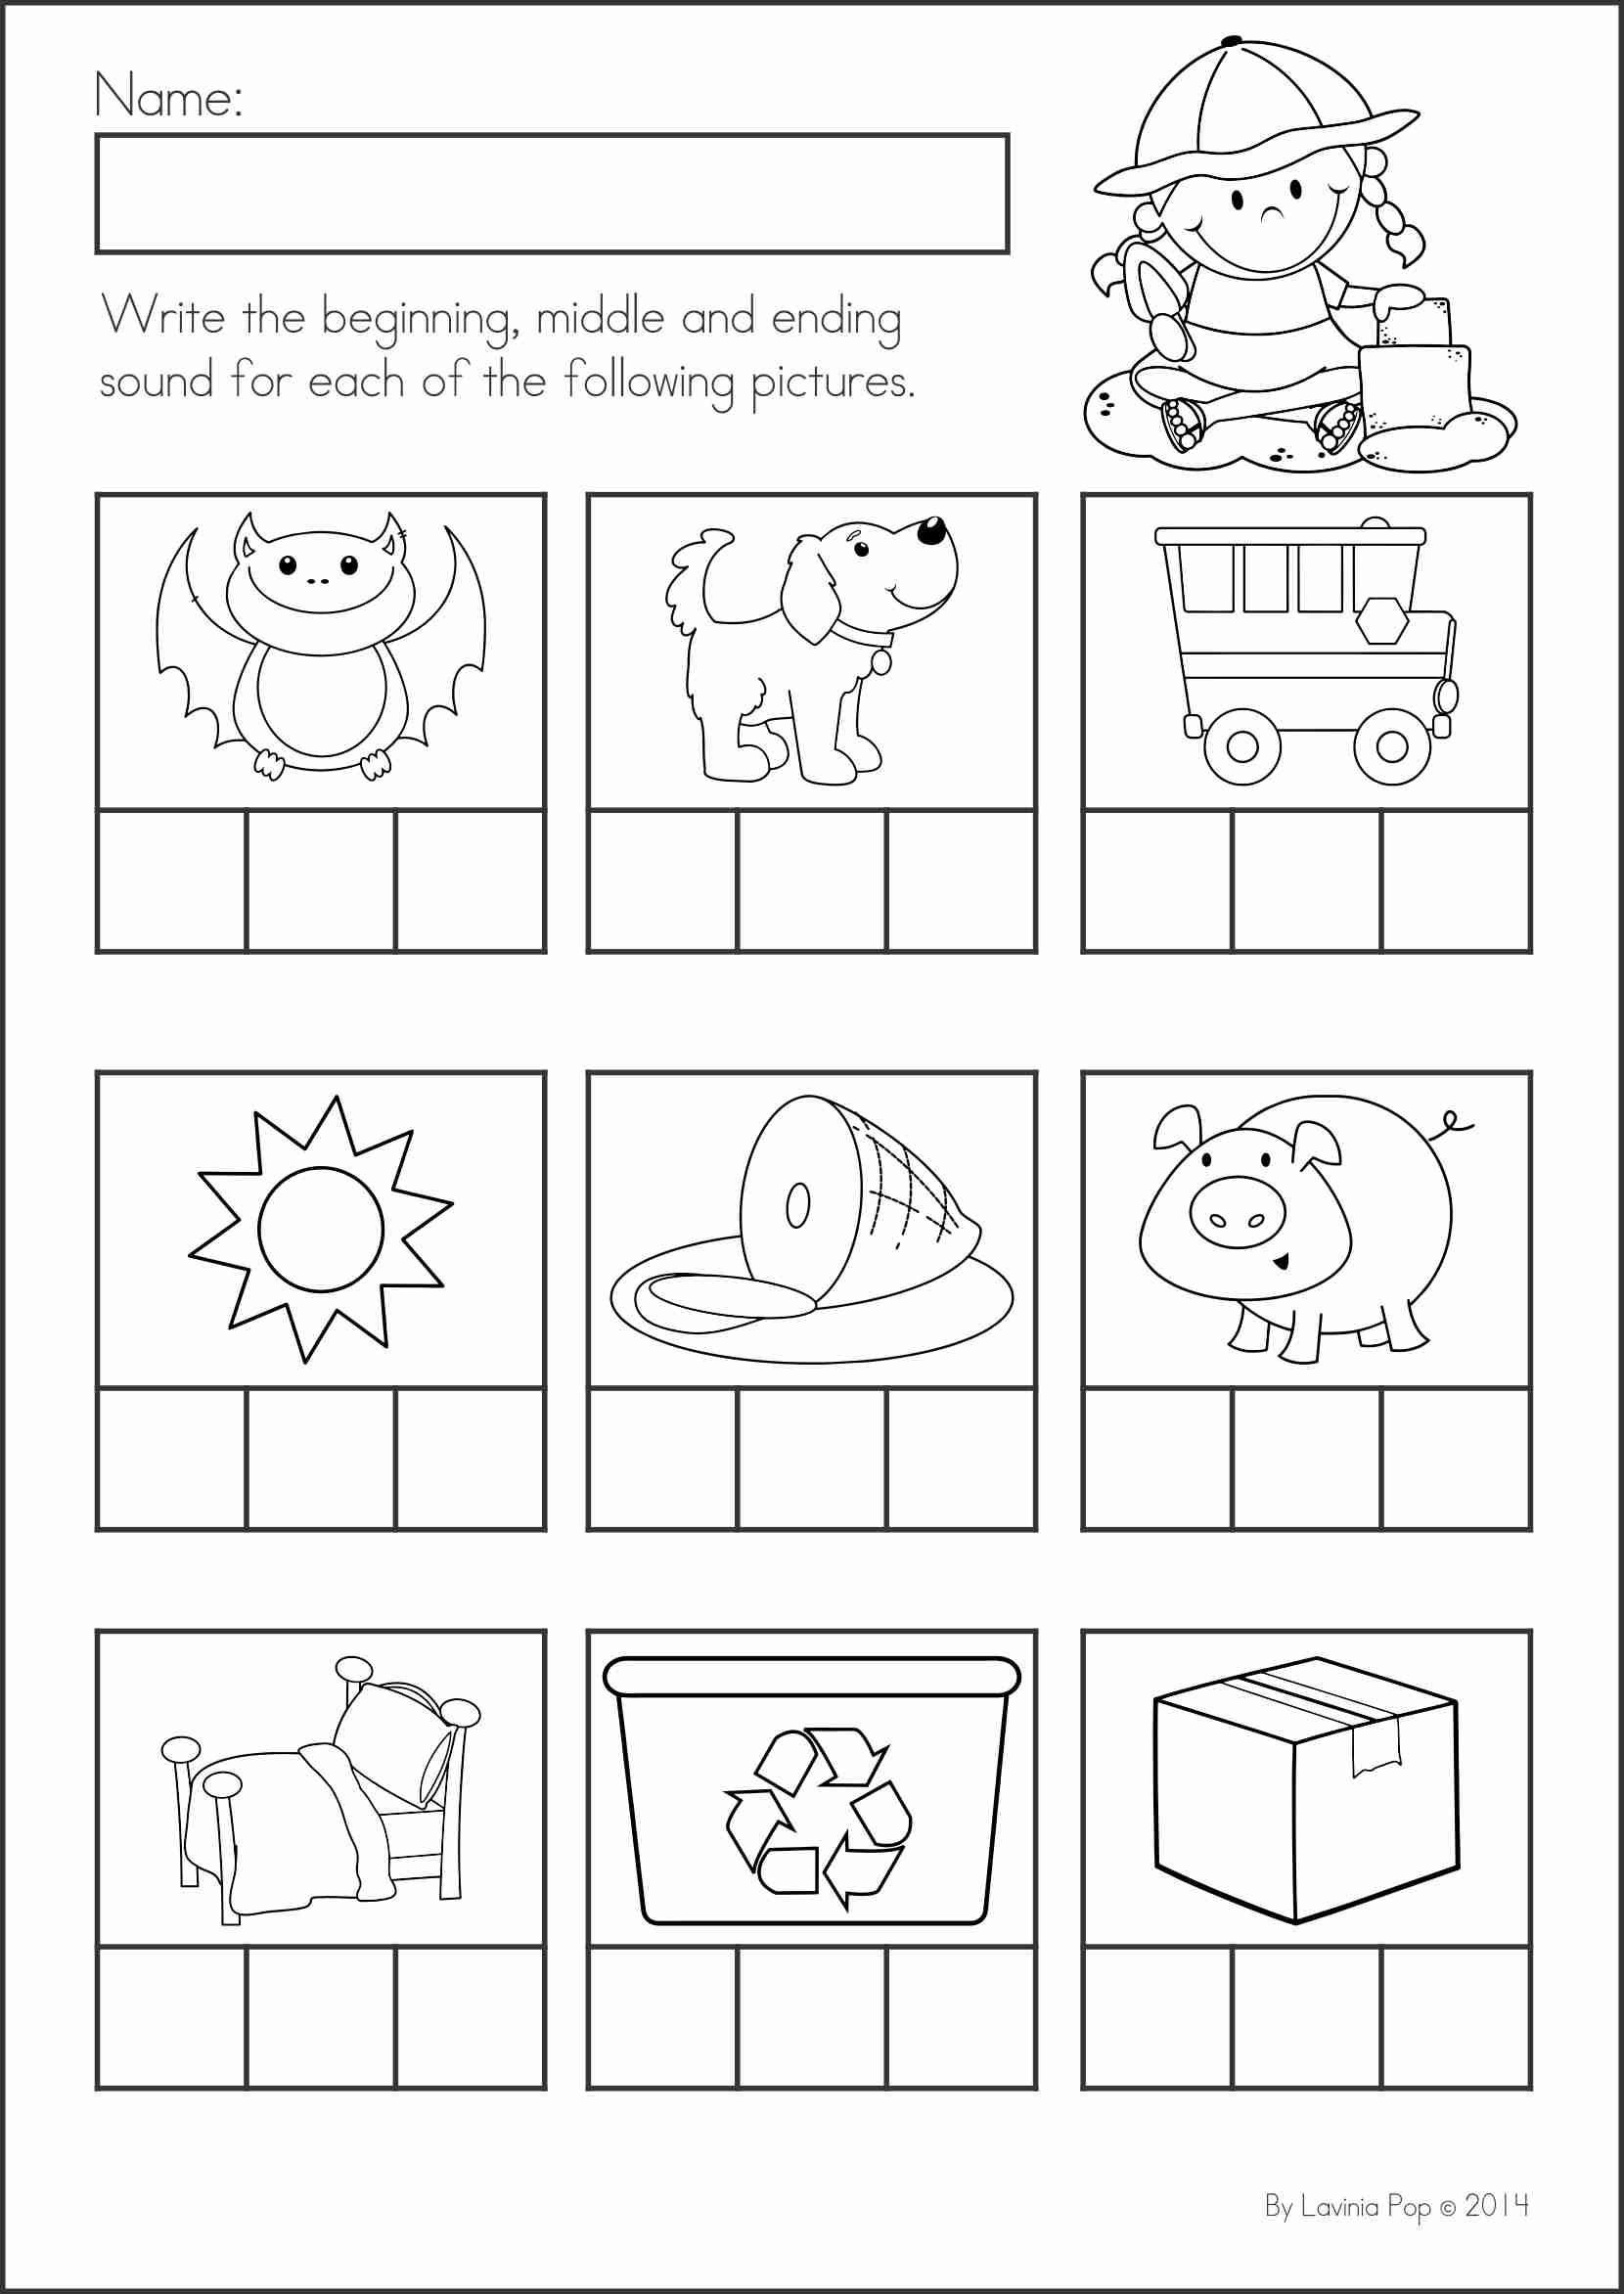 writing cvc words worksheet kindergarten summer review math literacy worksheets activities 104 pages a page from the unit write the cvc words